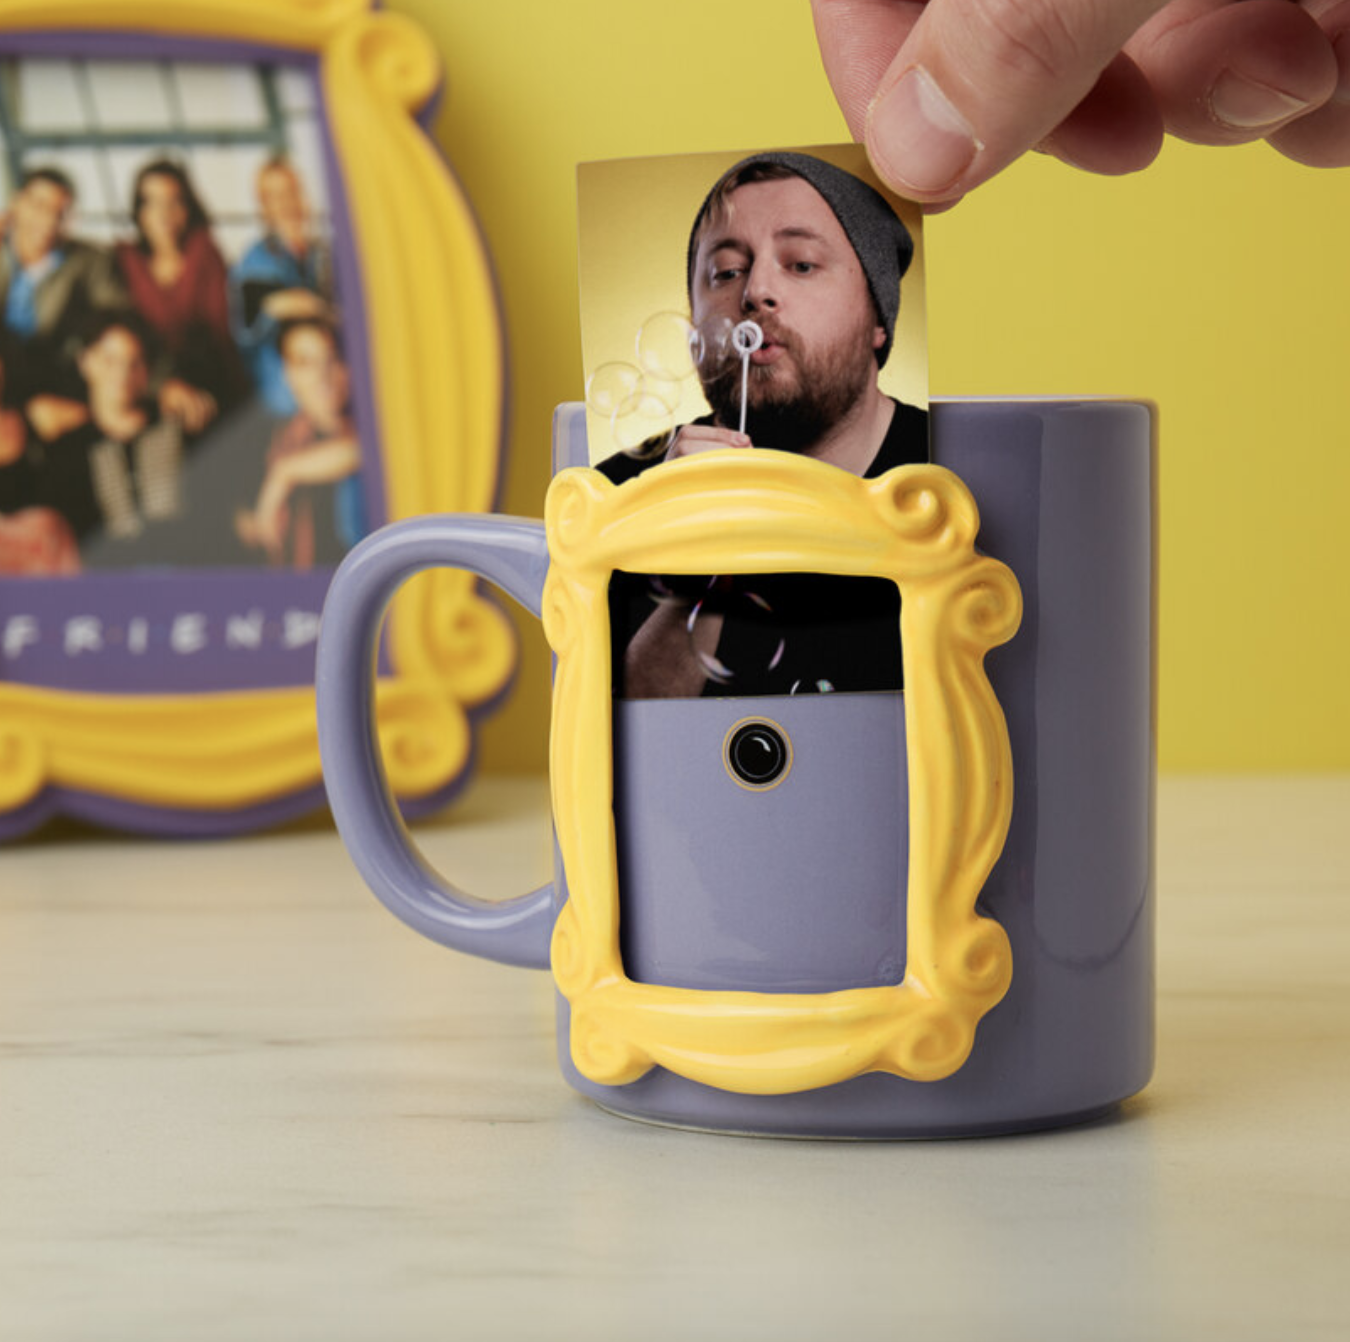 A photo frame mug shaped like the famous purple doorway from Friends.